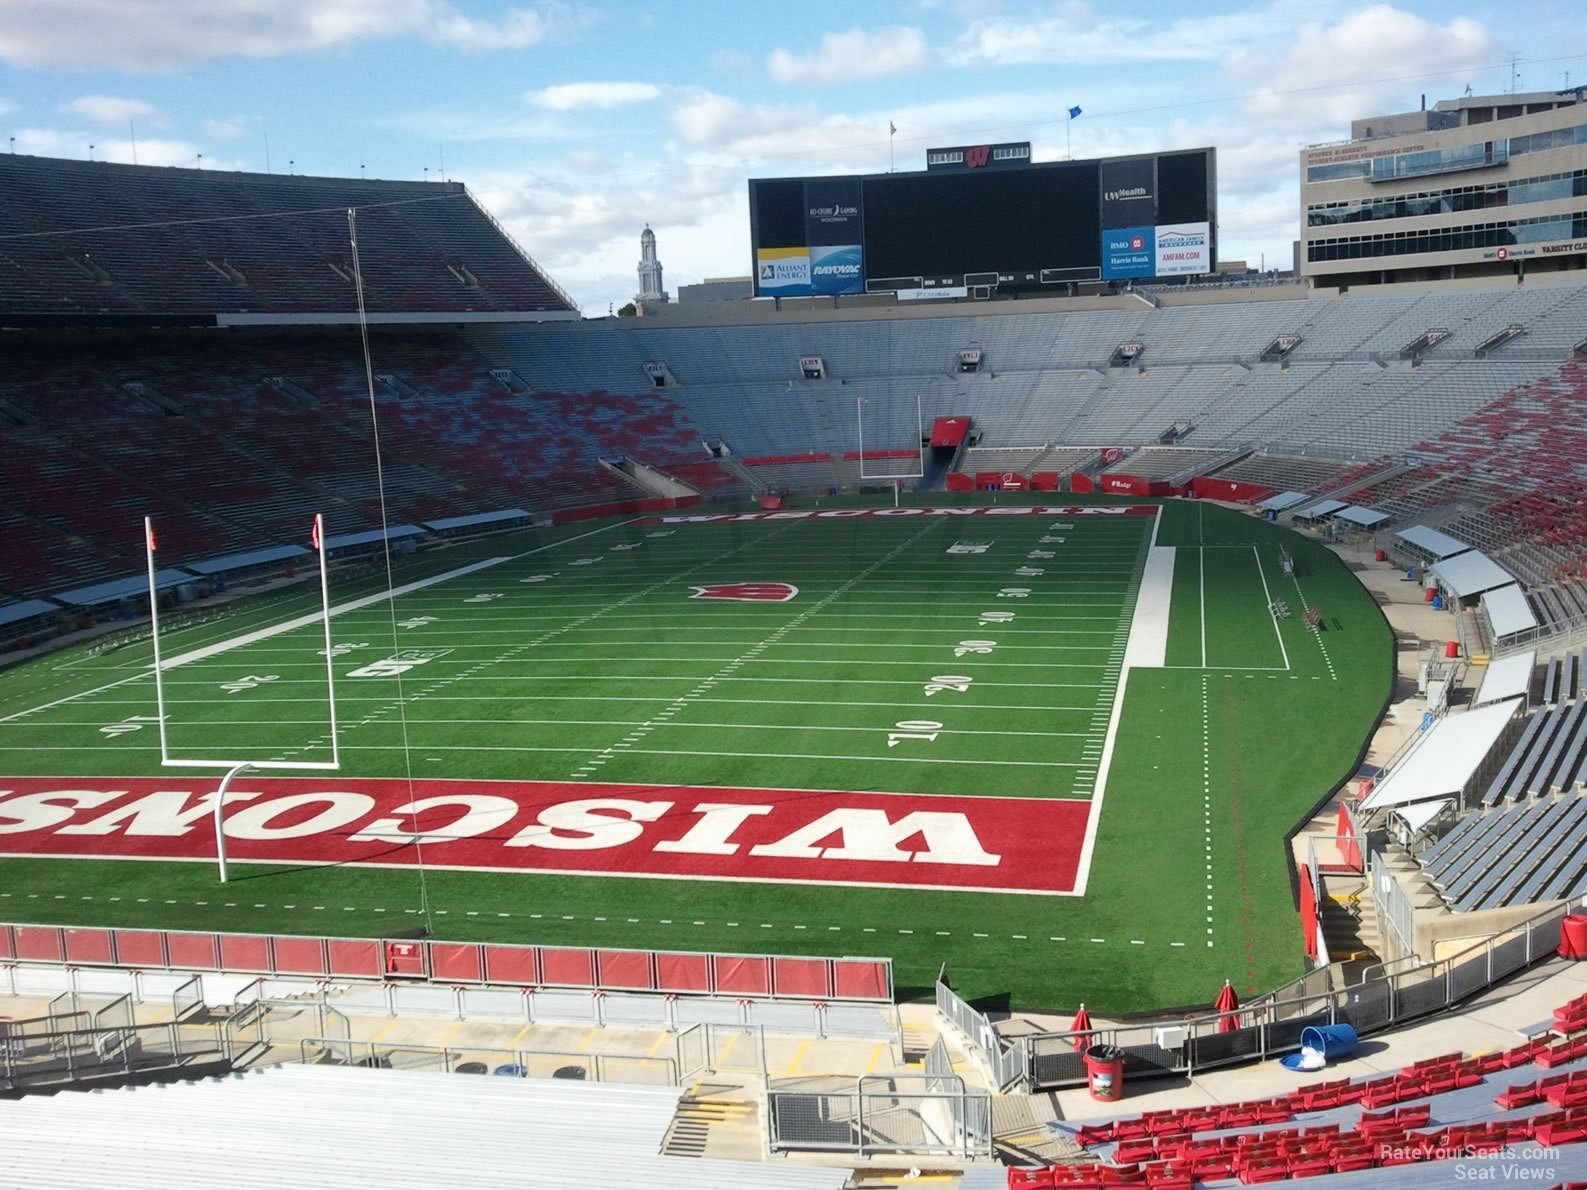 View from Section Y2 Row 52 at Camp Randall Stadium